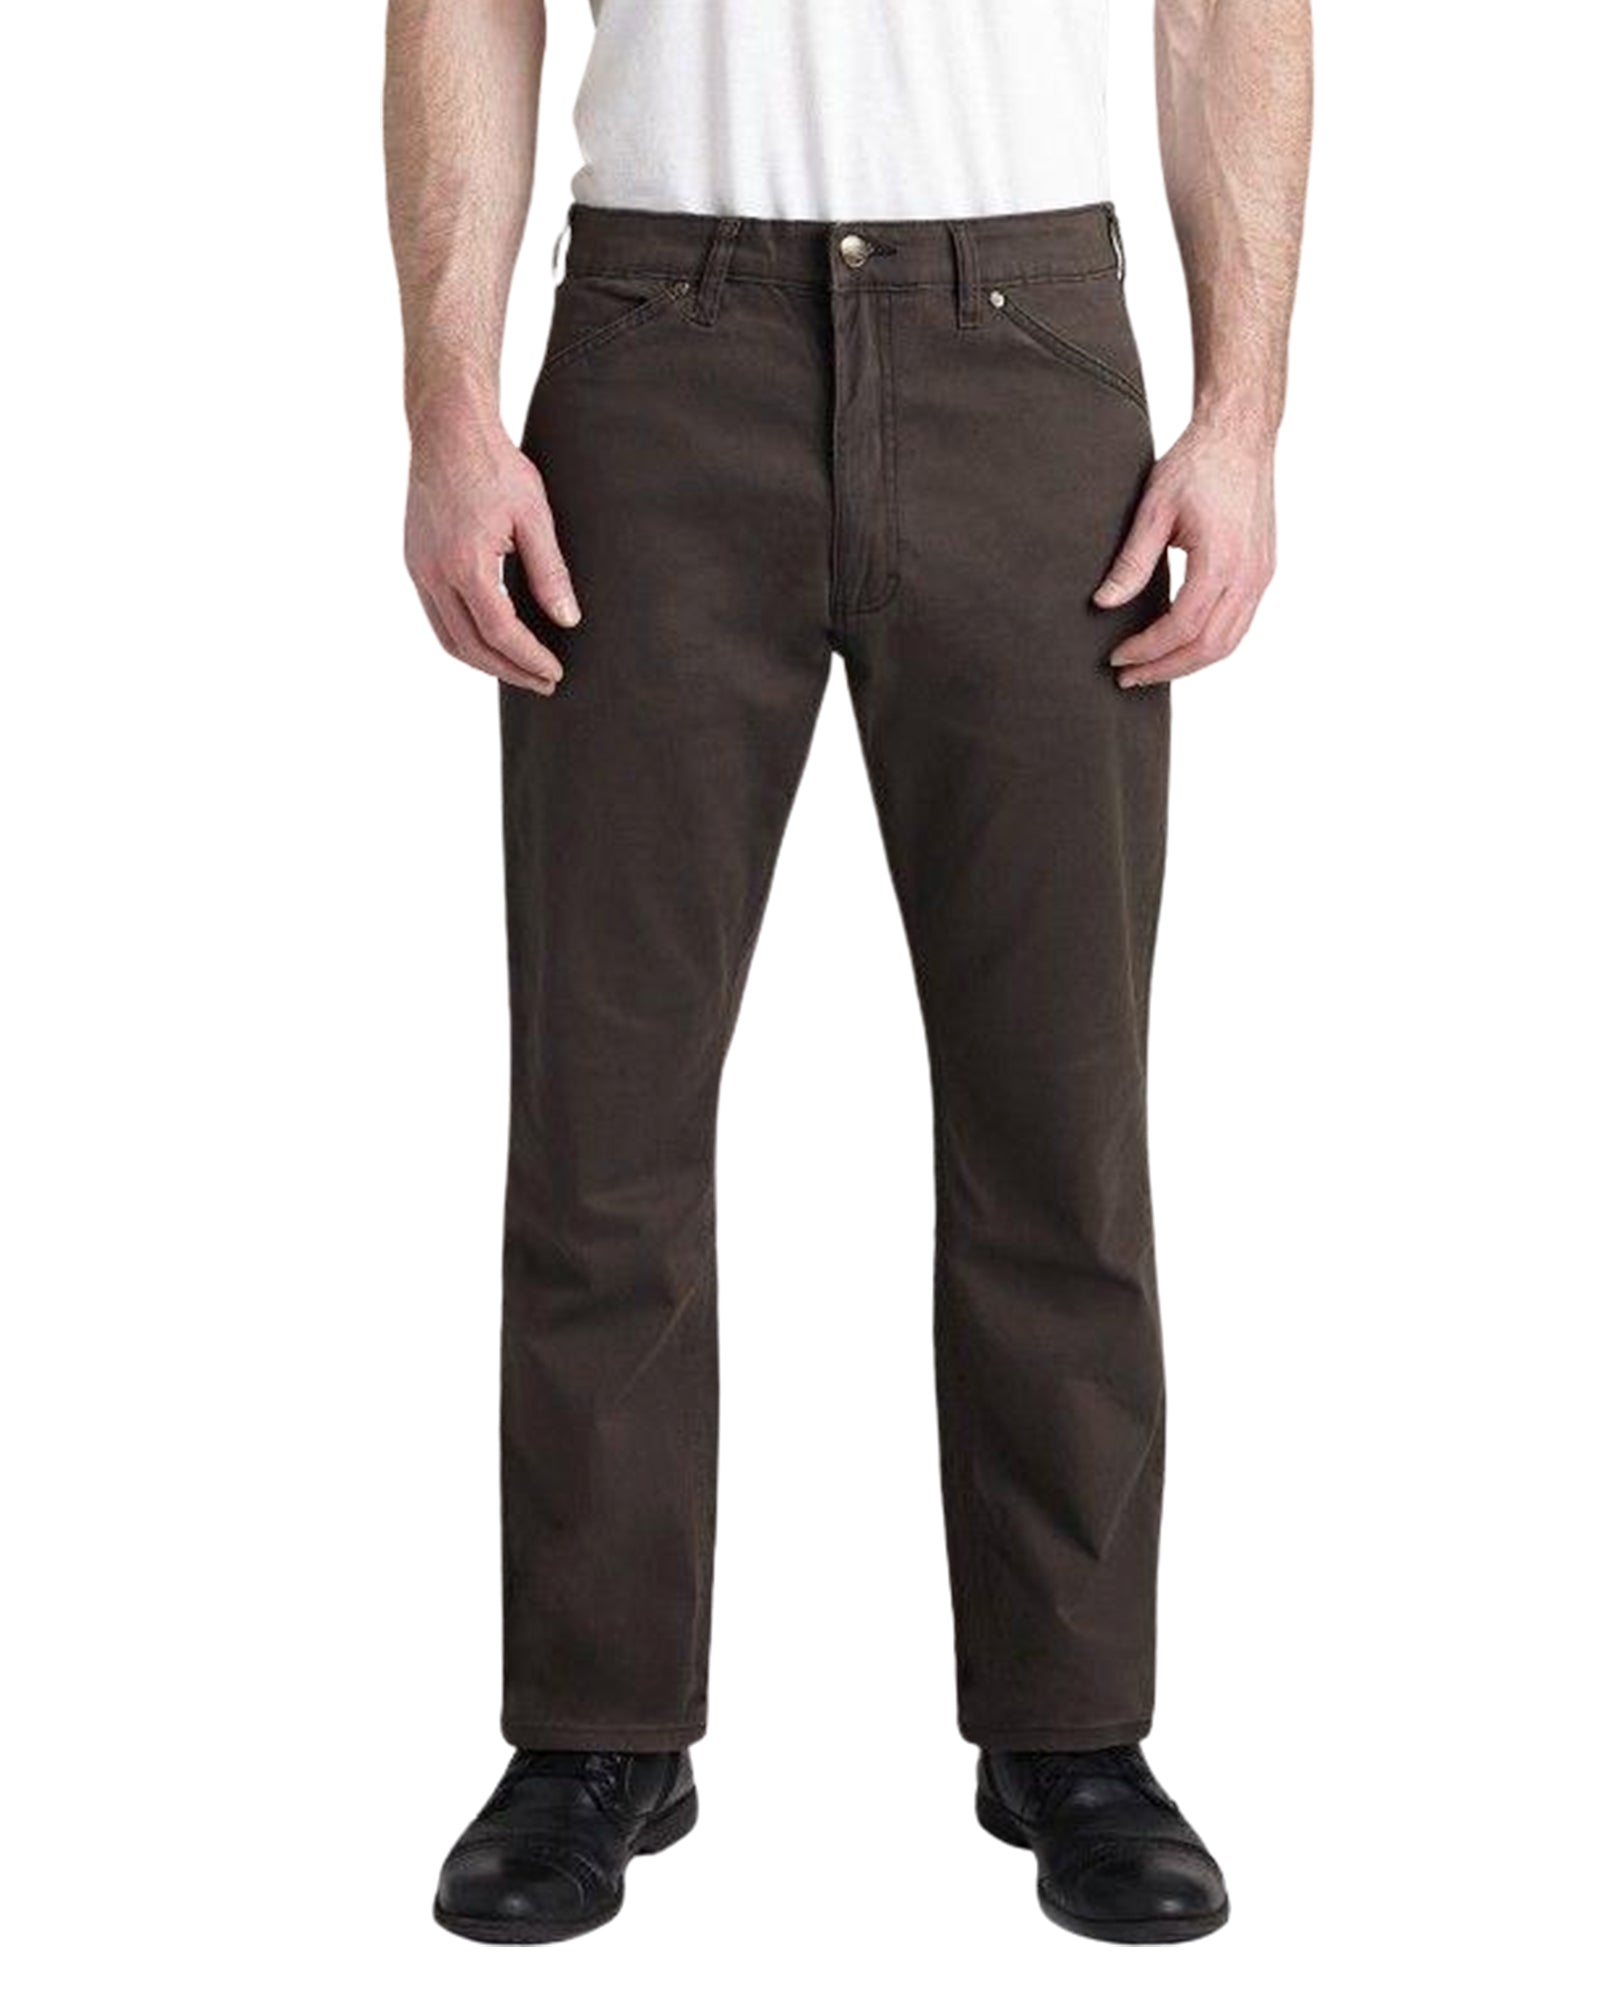 Grand River Brown Twill Stretch Jean - Rainwater's